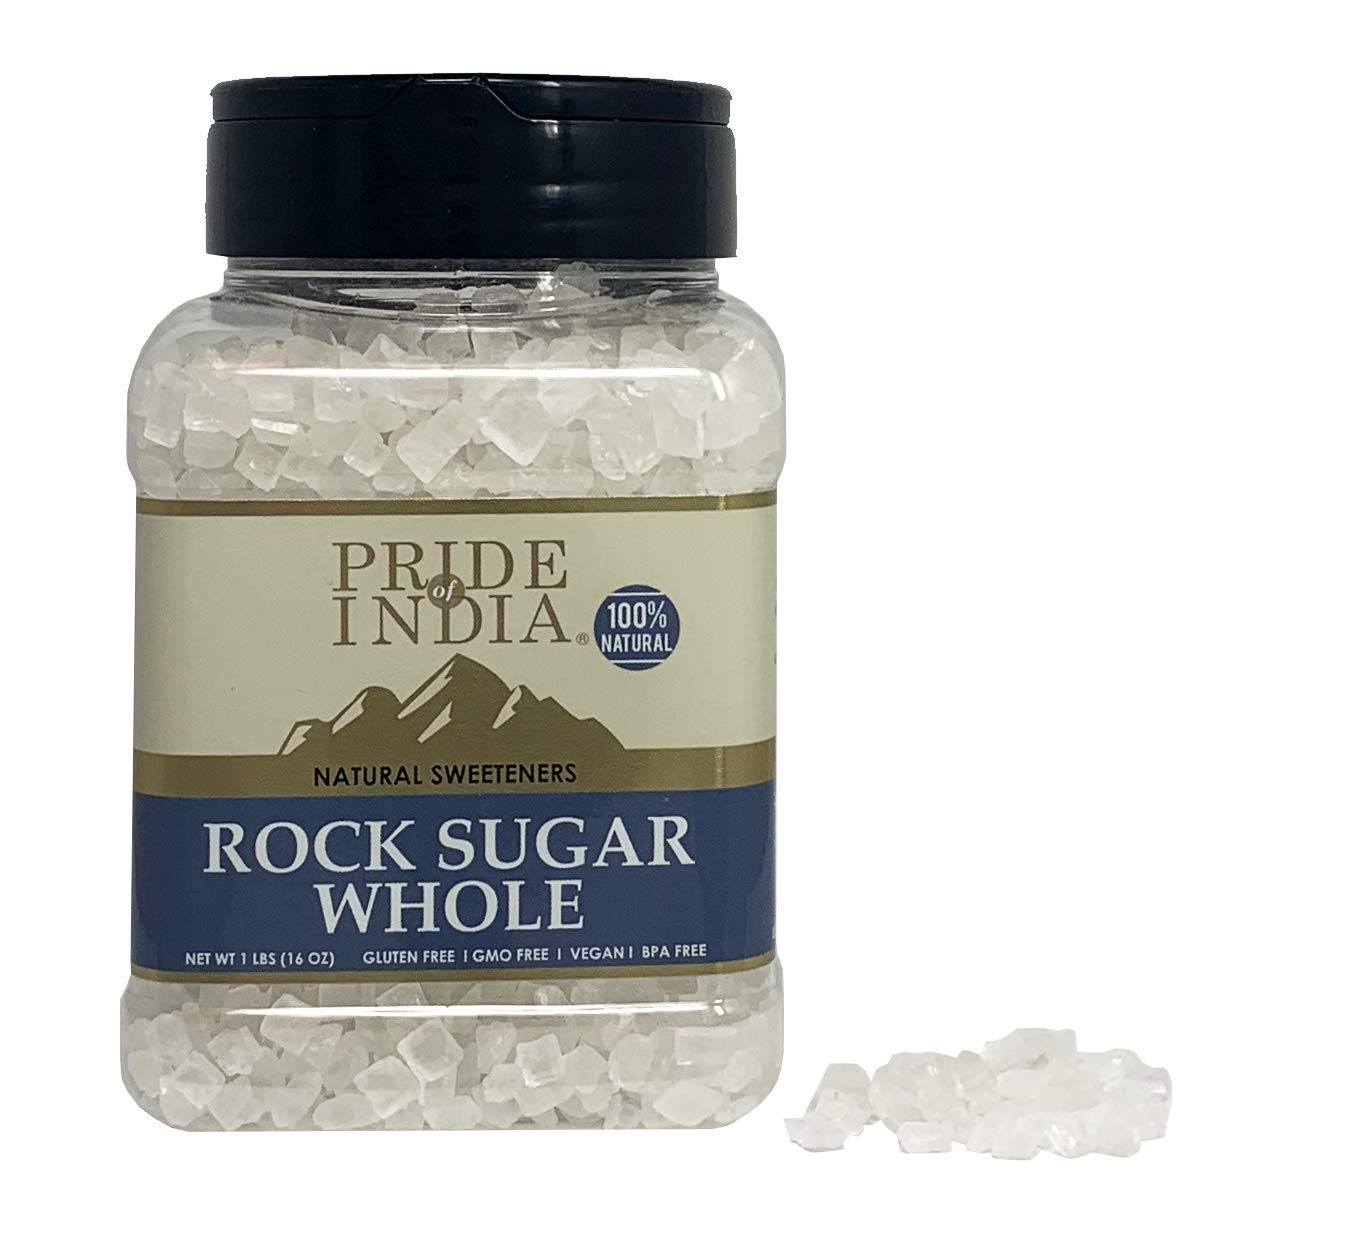 Pride Of India - Natural Crystal Rock Sugar Whole - 16 oz (454 gm) Medium Dual Sifter Jar - Authentic Indian Sugar Crystals - Used to Sweeten Milk or Tea - Offers Best Value for Money